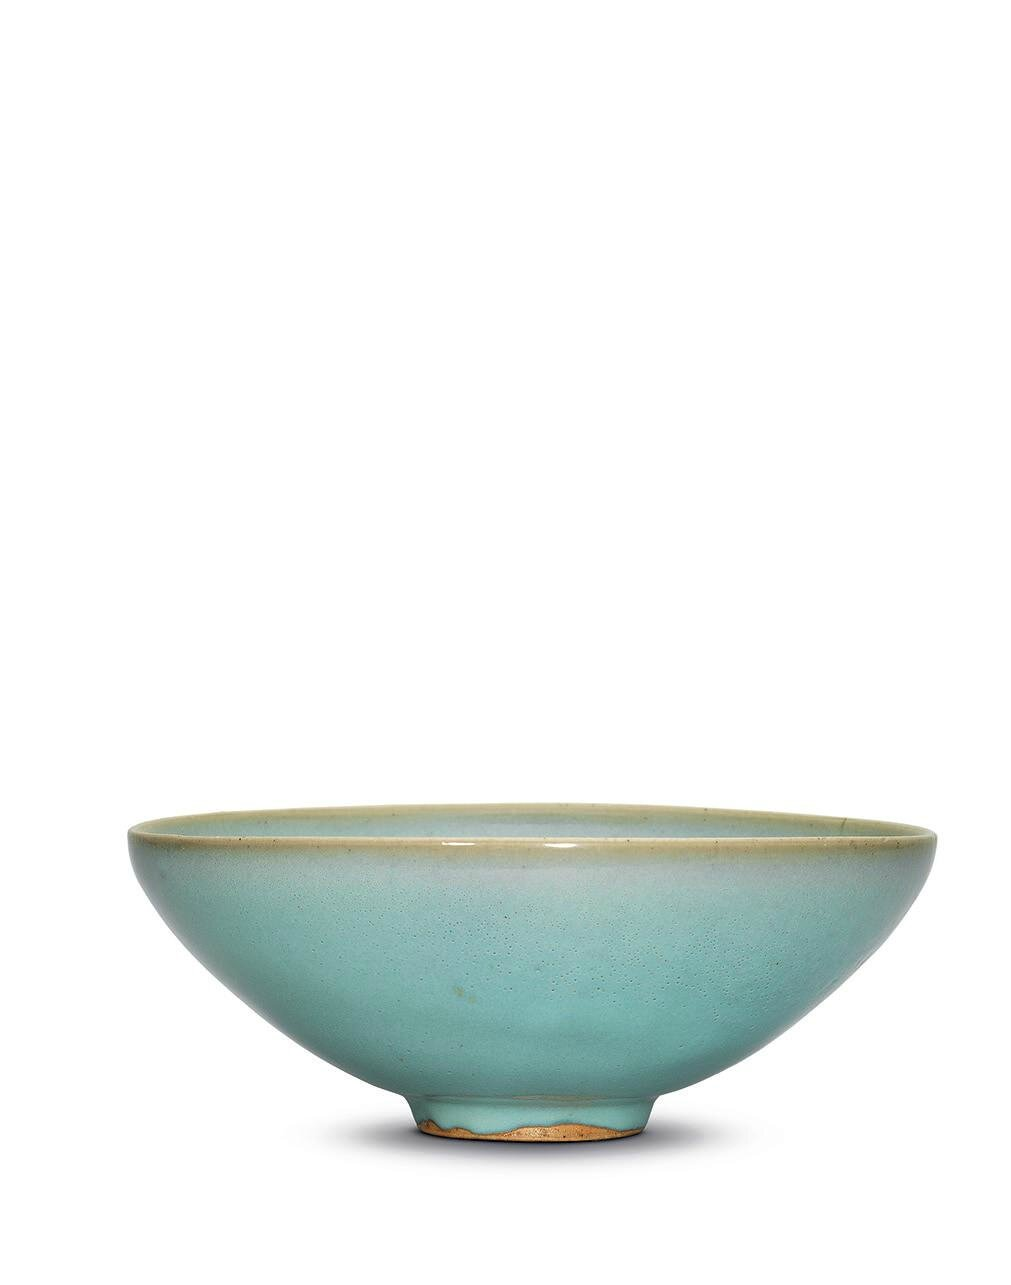 A large Jun sky-blue glazed bowl, Northern Song-Jin dynasty, 12th-13th century